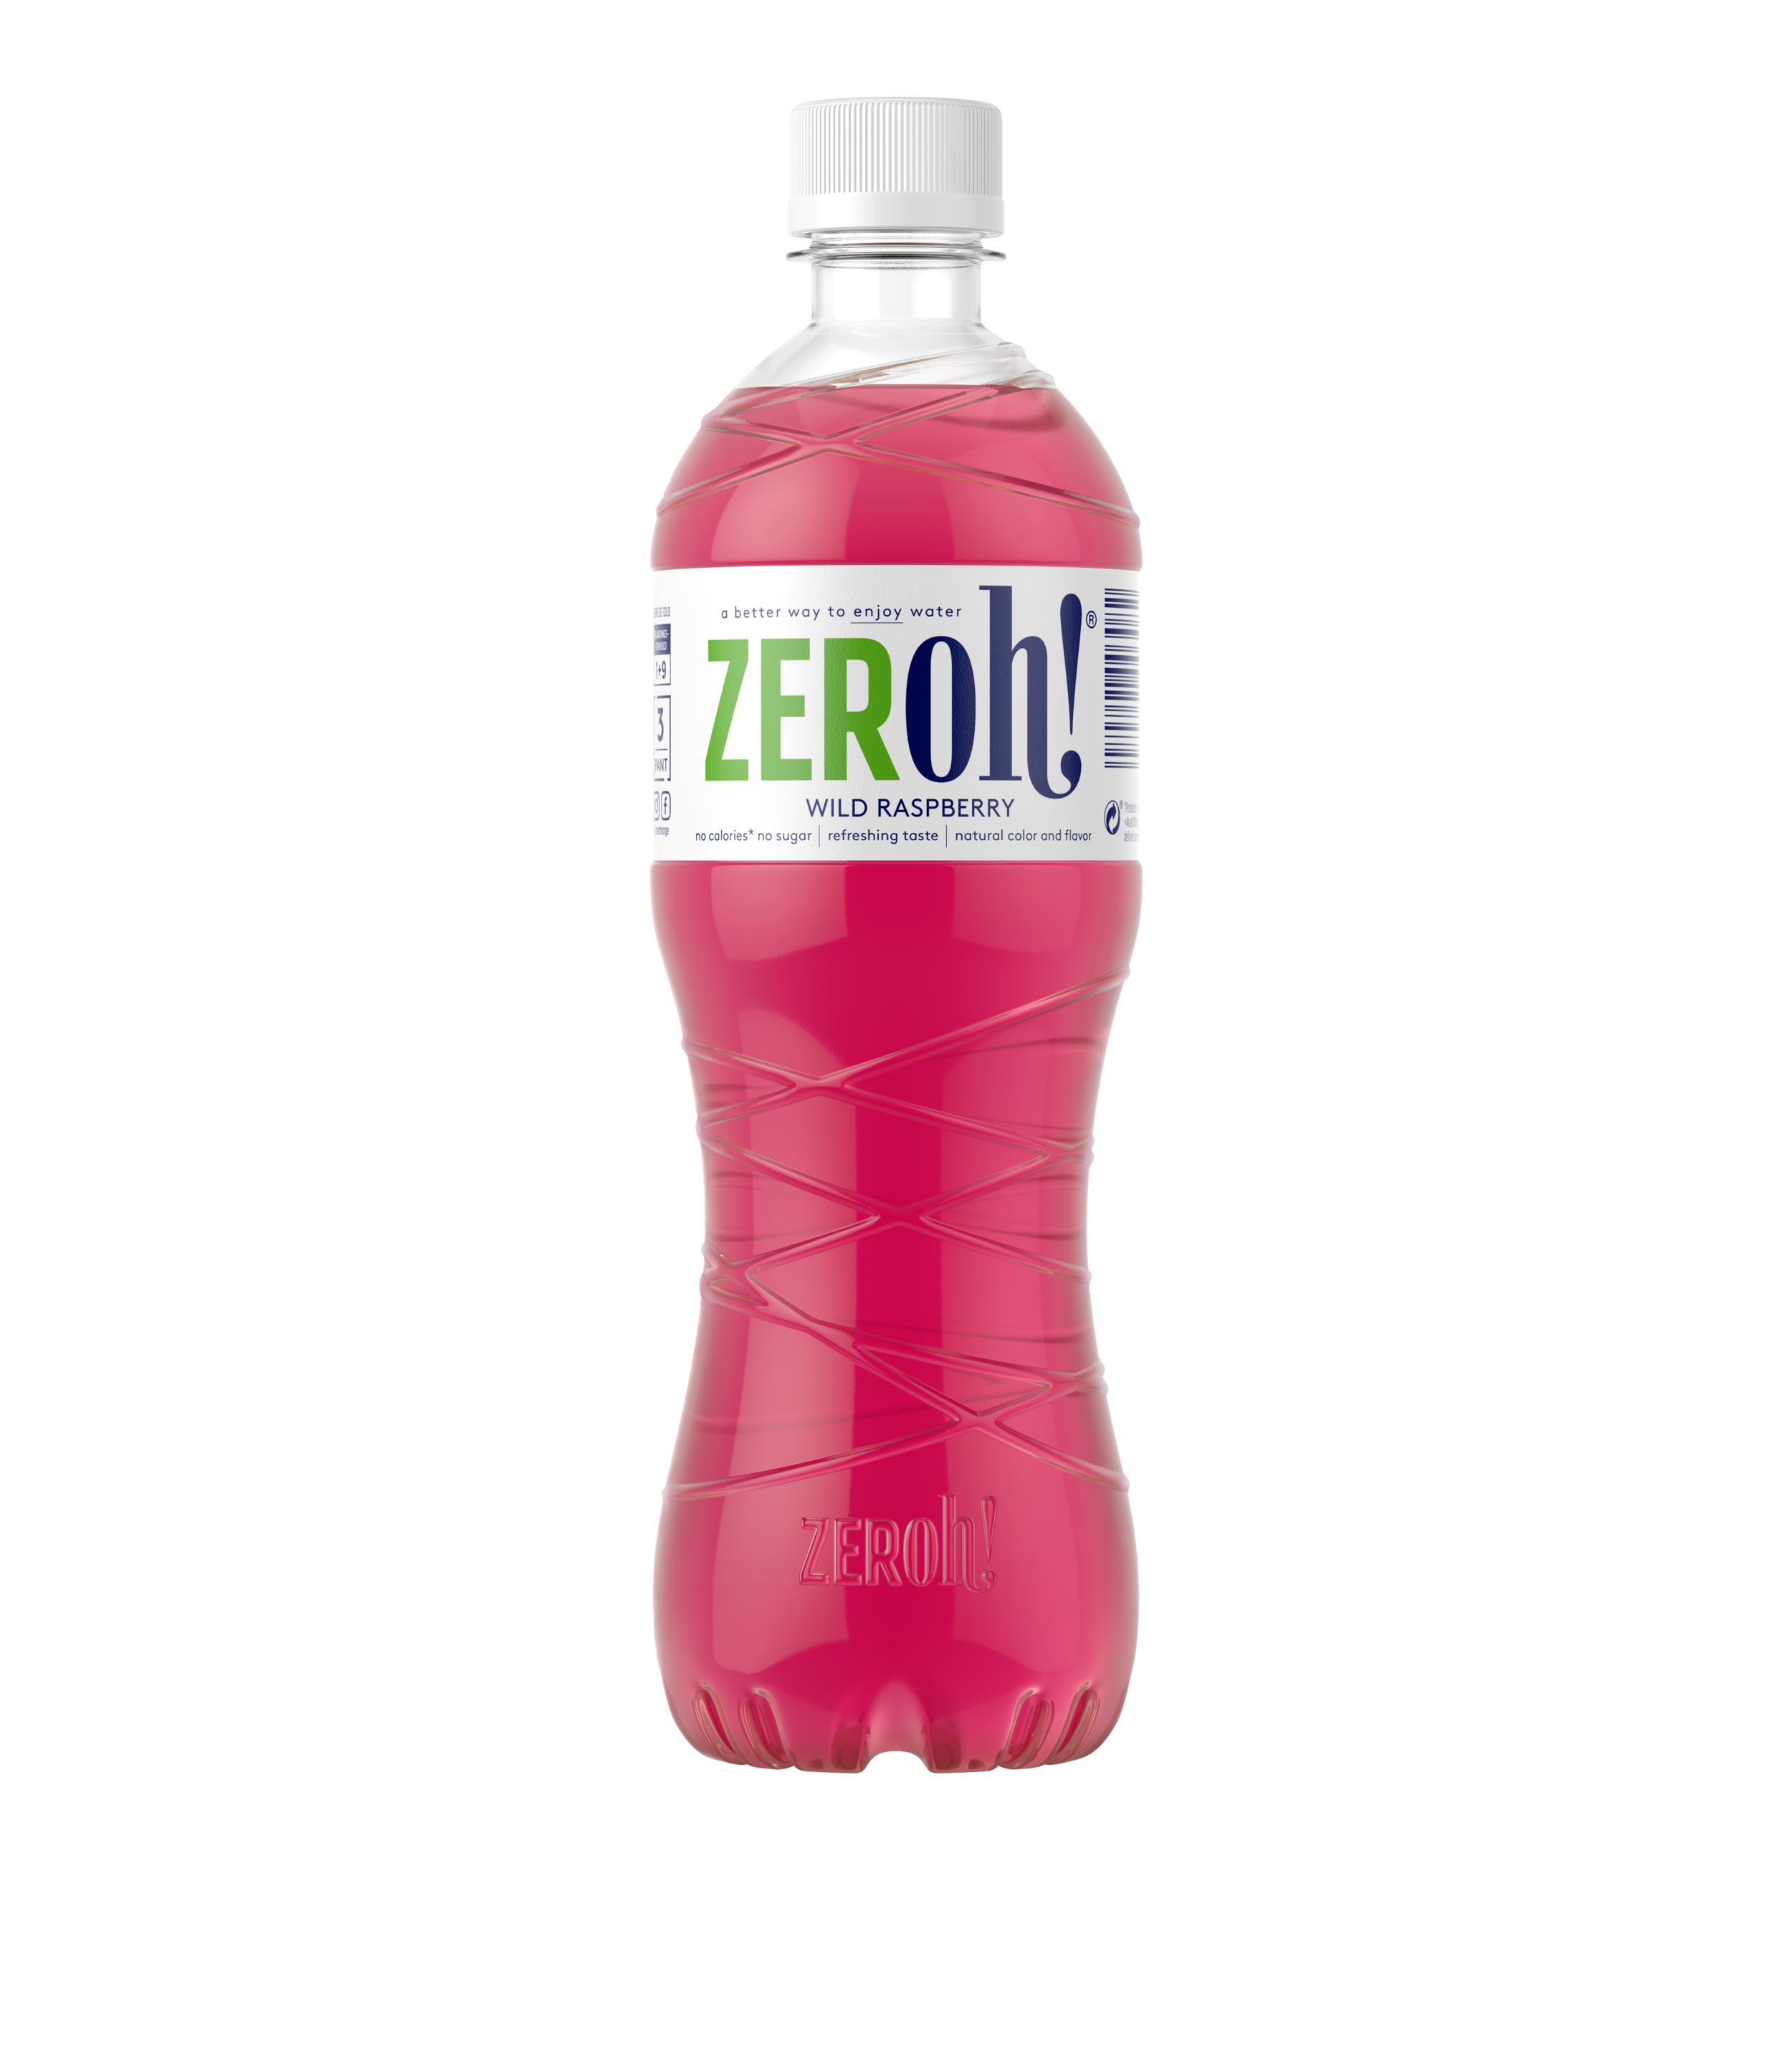 ZERoh! Wild Raspberry 2019 3D transparent.png